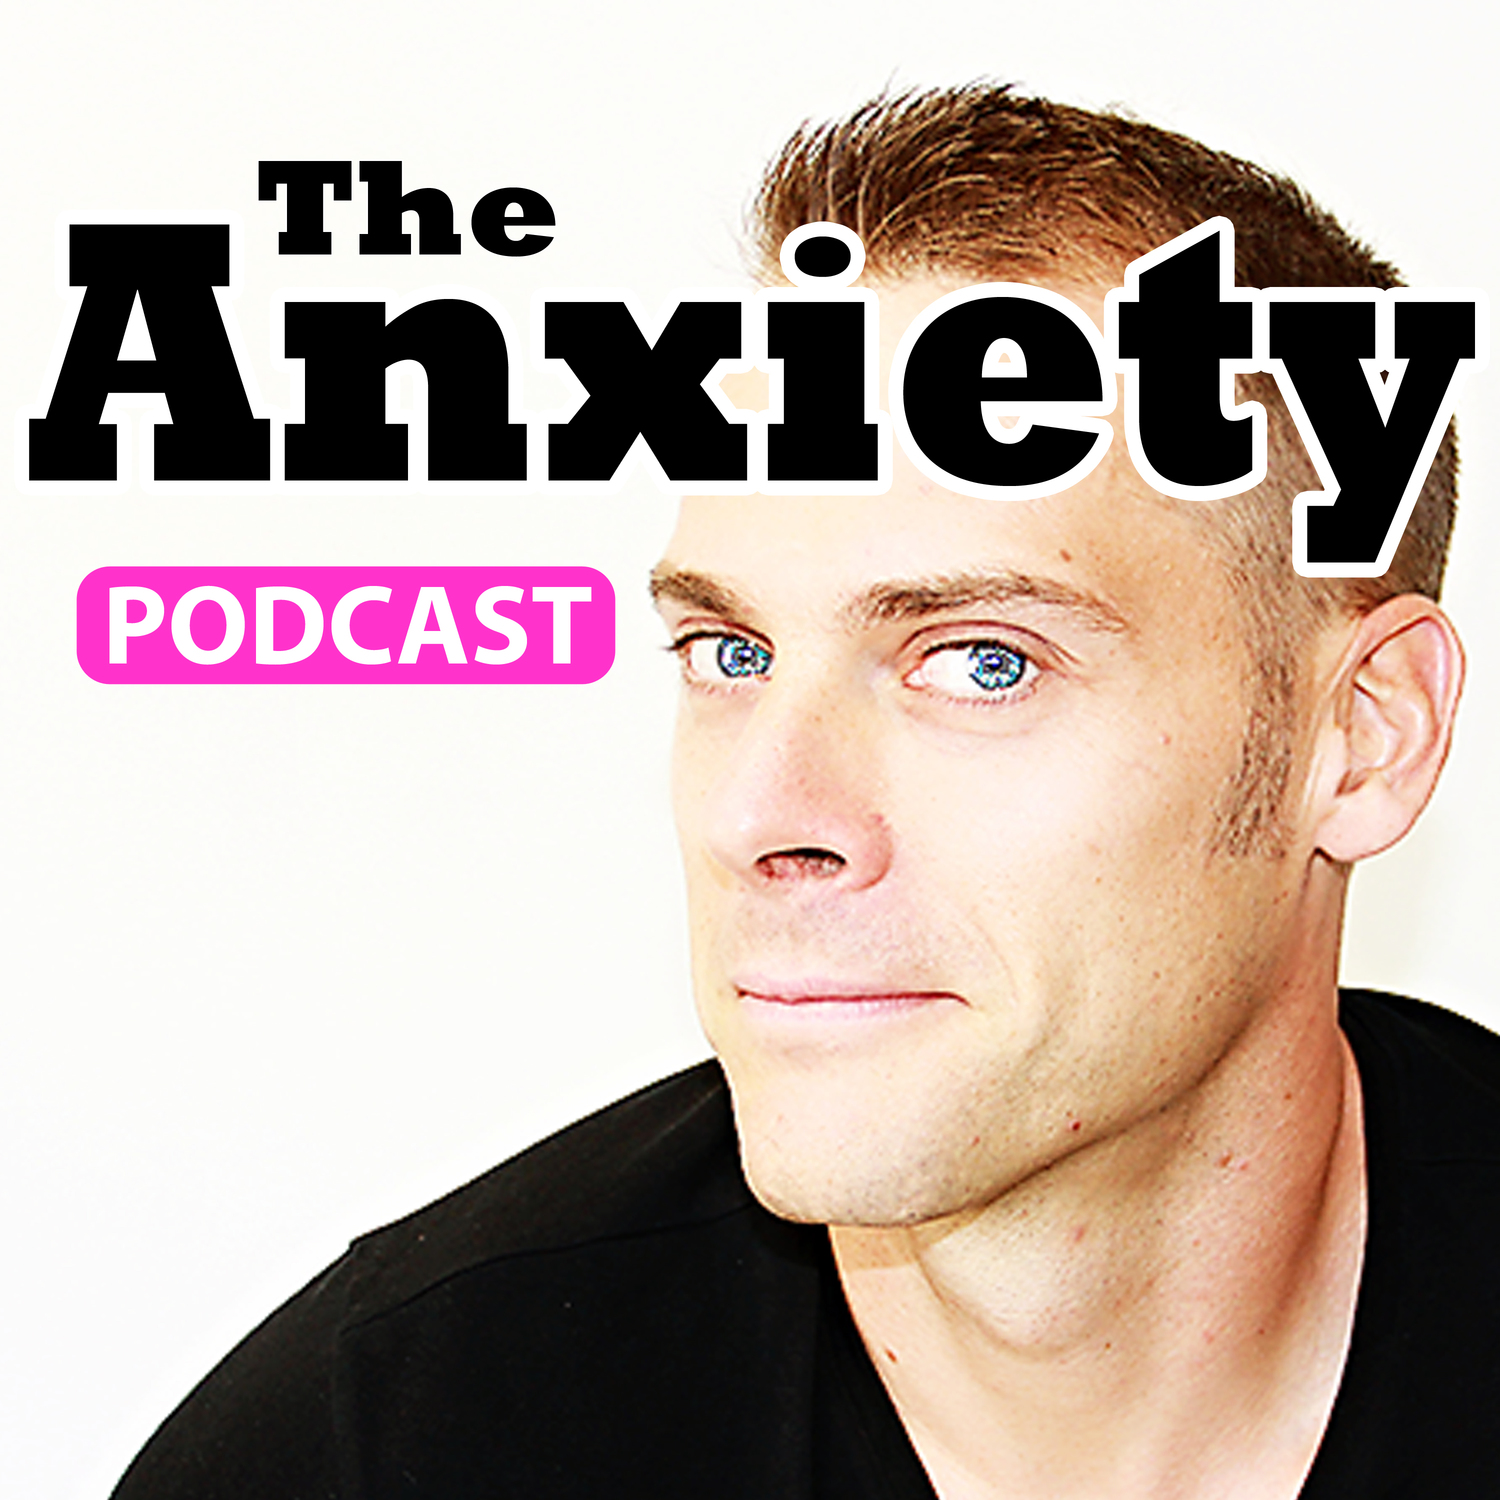 The Anxiety Podcast - Less Anxiety. More Life